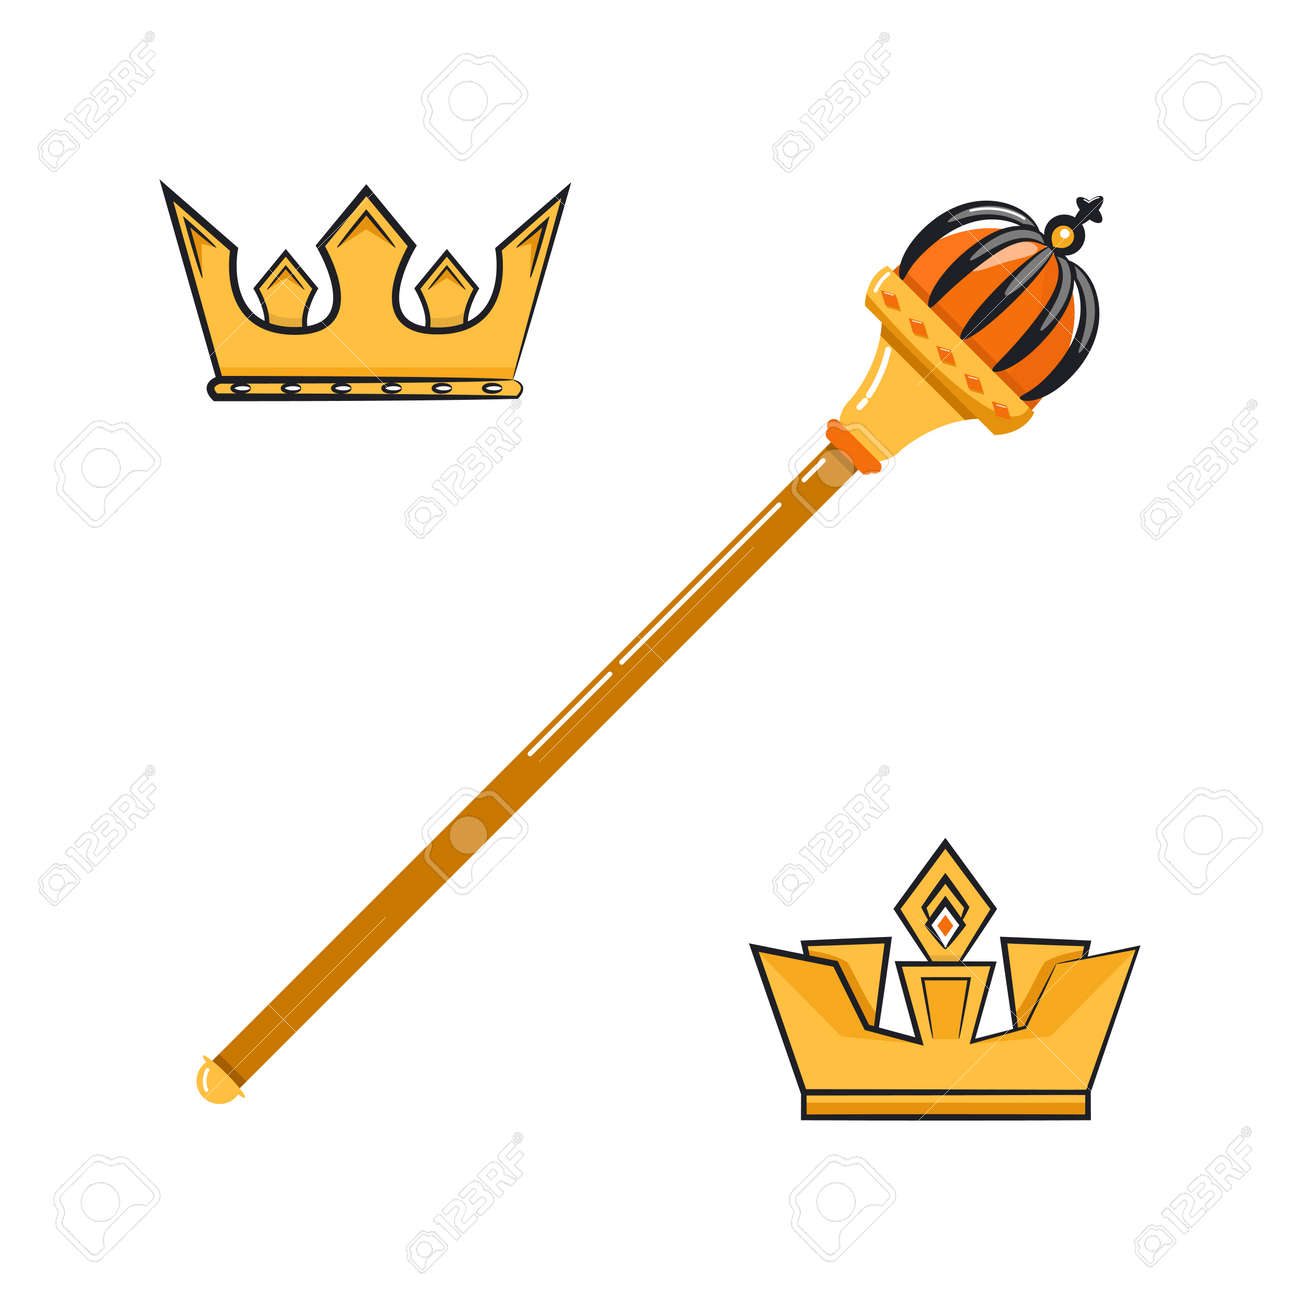 Vector Illustration Of Cartoon Scepter And Crowns Royalty Free Cliparts Vectors And Stock Illustration Image 109690712 It's high quality and easy to use. vector illustration of cartoon scepter and crowns